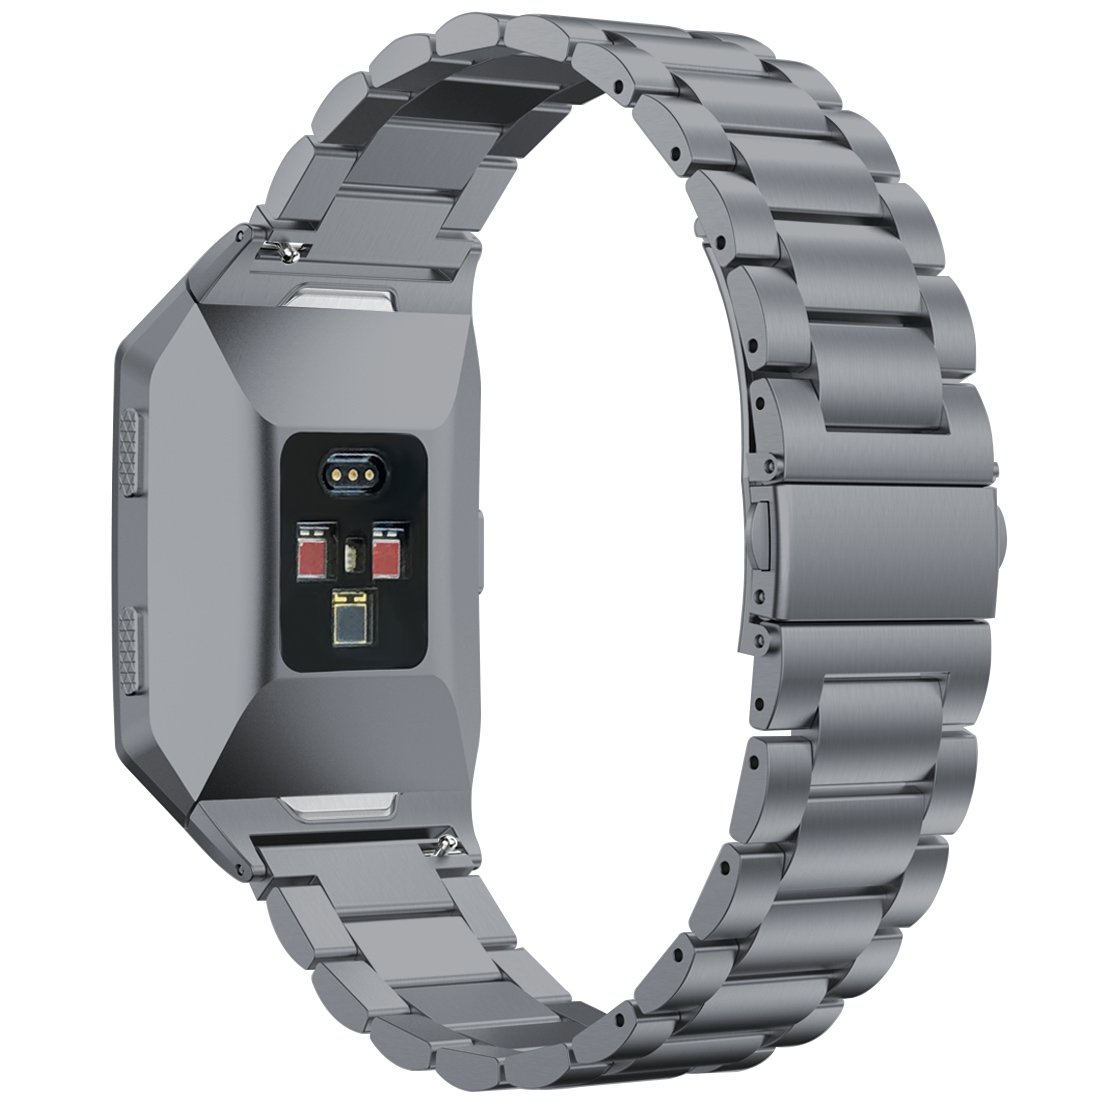 iiteeology Compatible Fitbit Ionic Band, Stainless Steel Metal Band with Butterfly Clasp for Fitbit Ionic Smart Watch (Link Band - Smoke Gray)